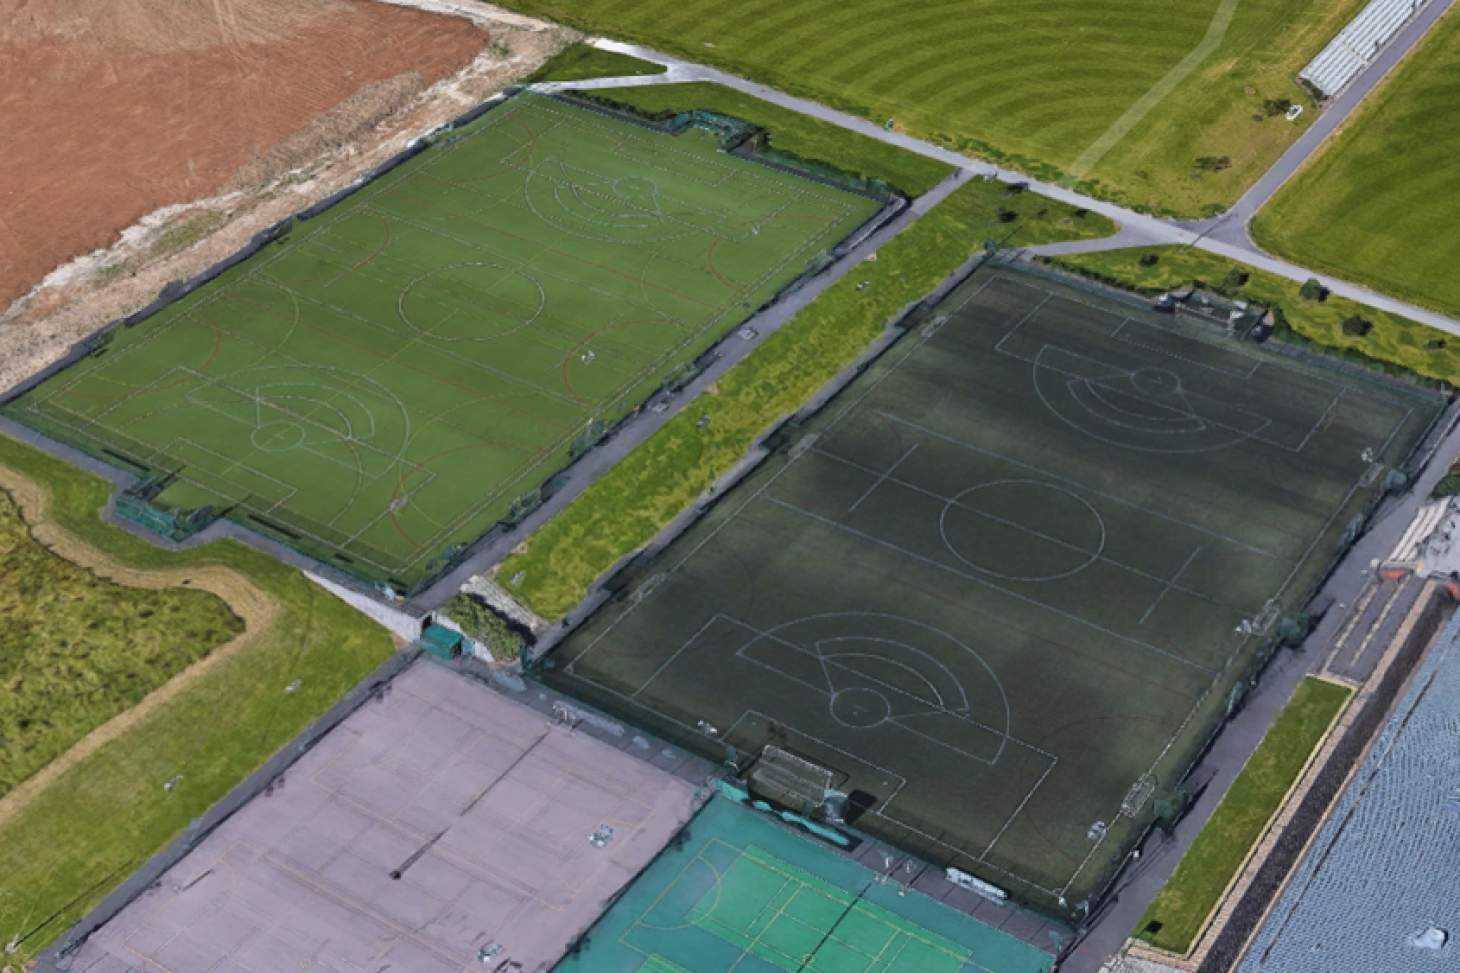 PlayFootball Guildford 6 a side | 3G Astroturf football pitch